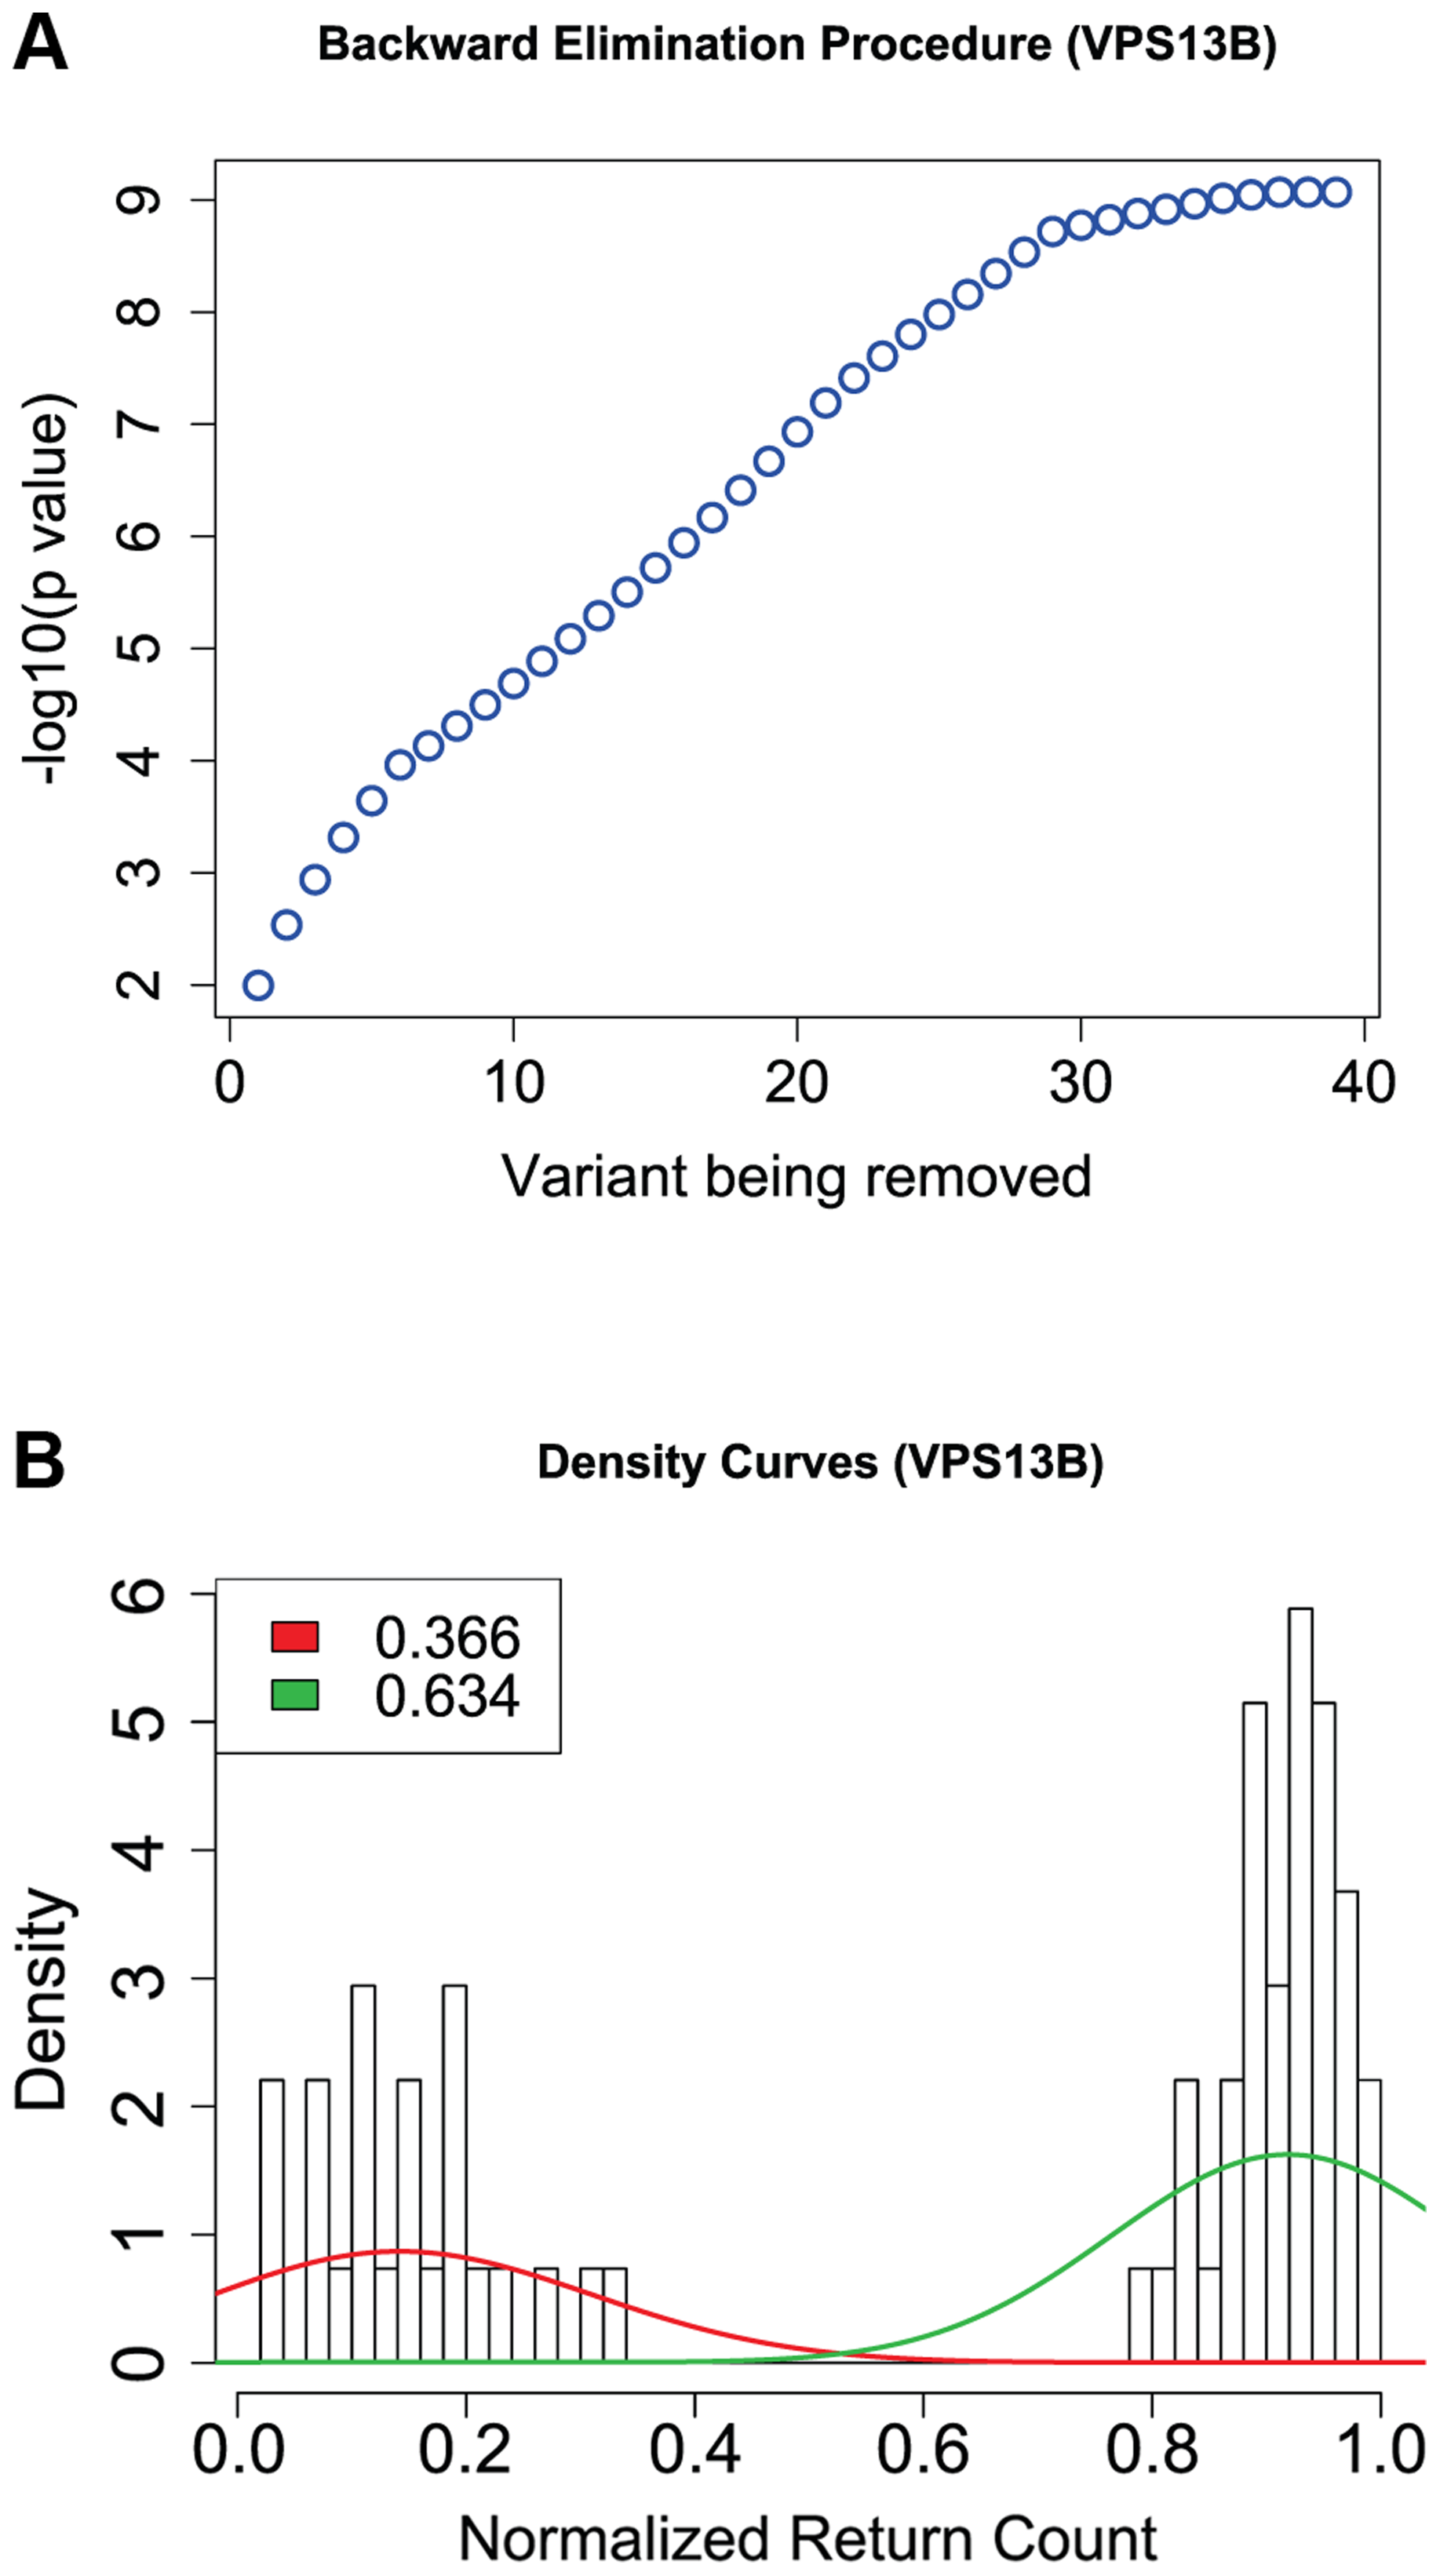 Results from the backward elimination procedure for non-synonymous and splice site variants in <i>VPS13B</i>.